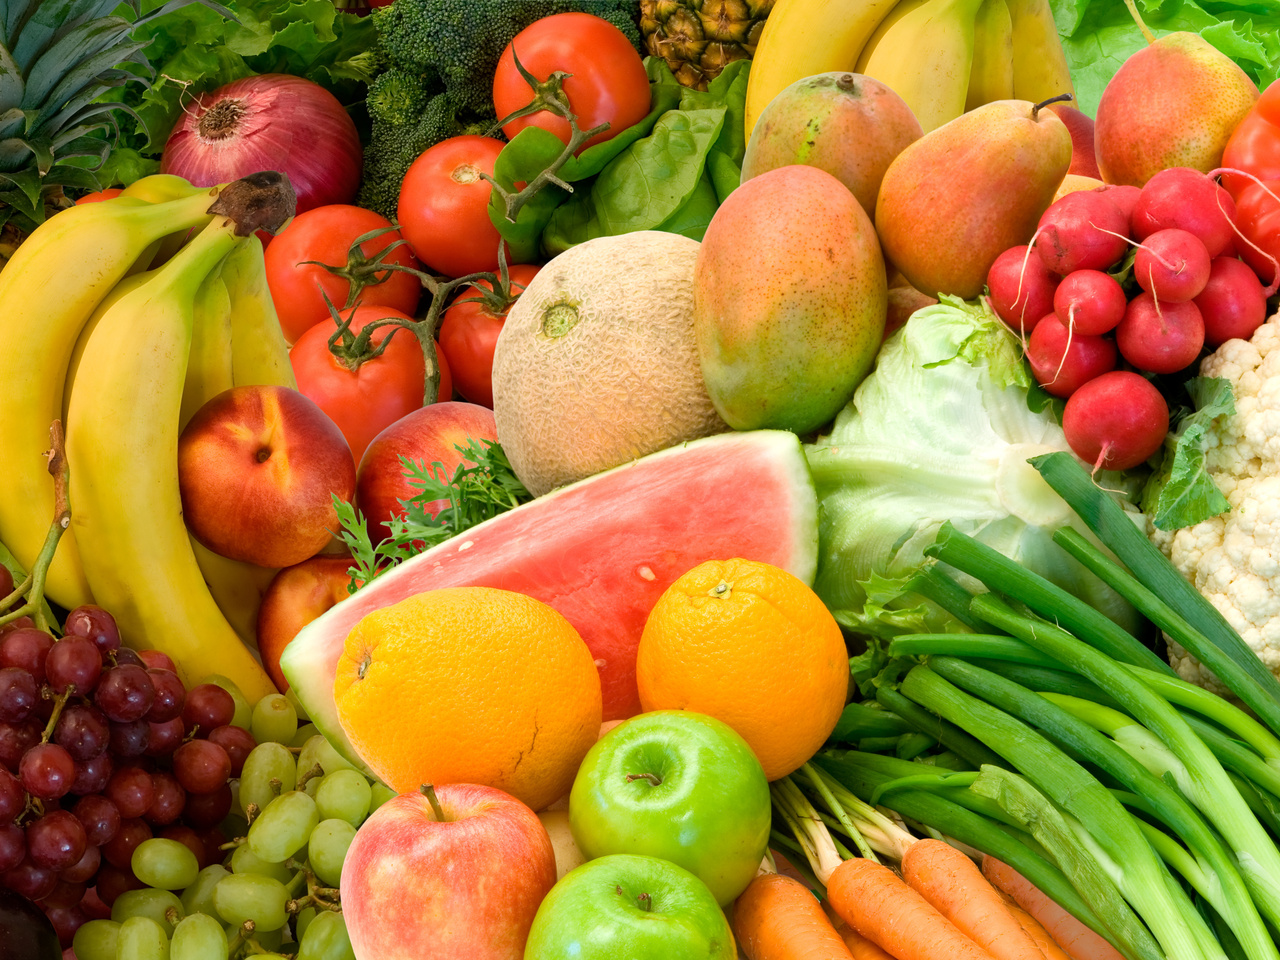 The role of vegetables in the diet